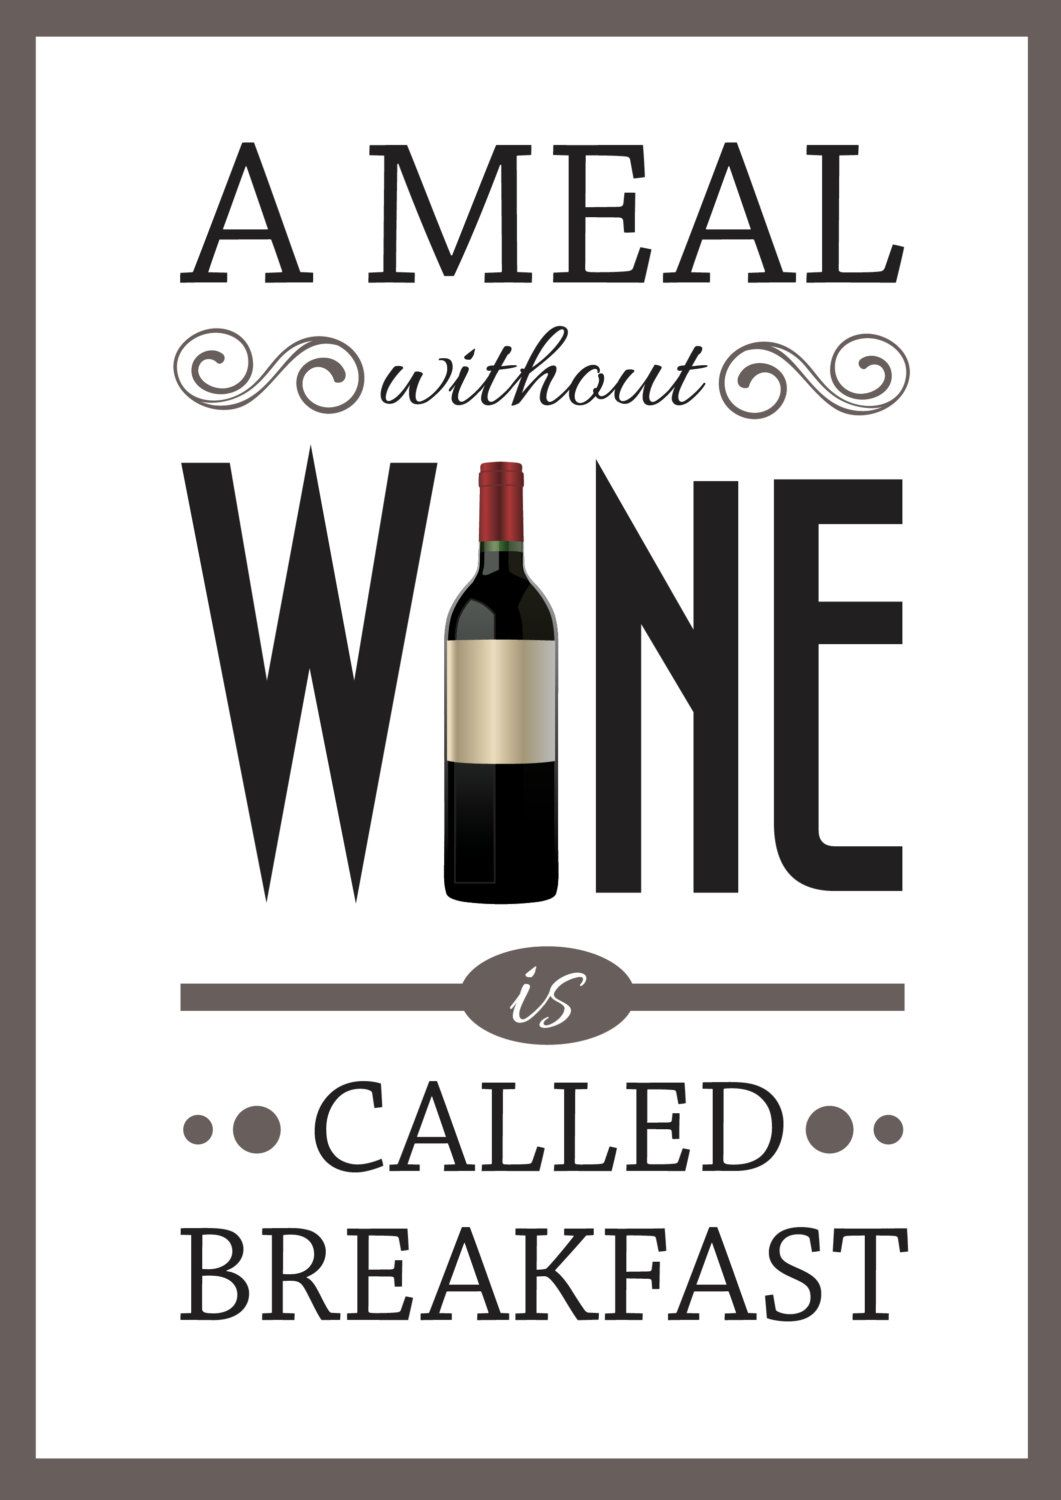 Wine quote poster uca meal without wine is called a breakfastud wine